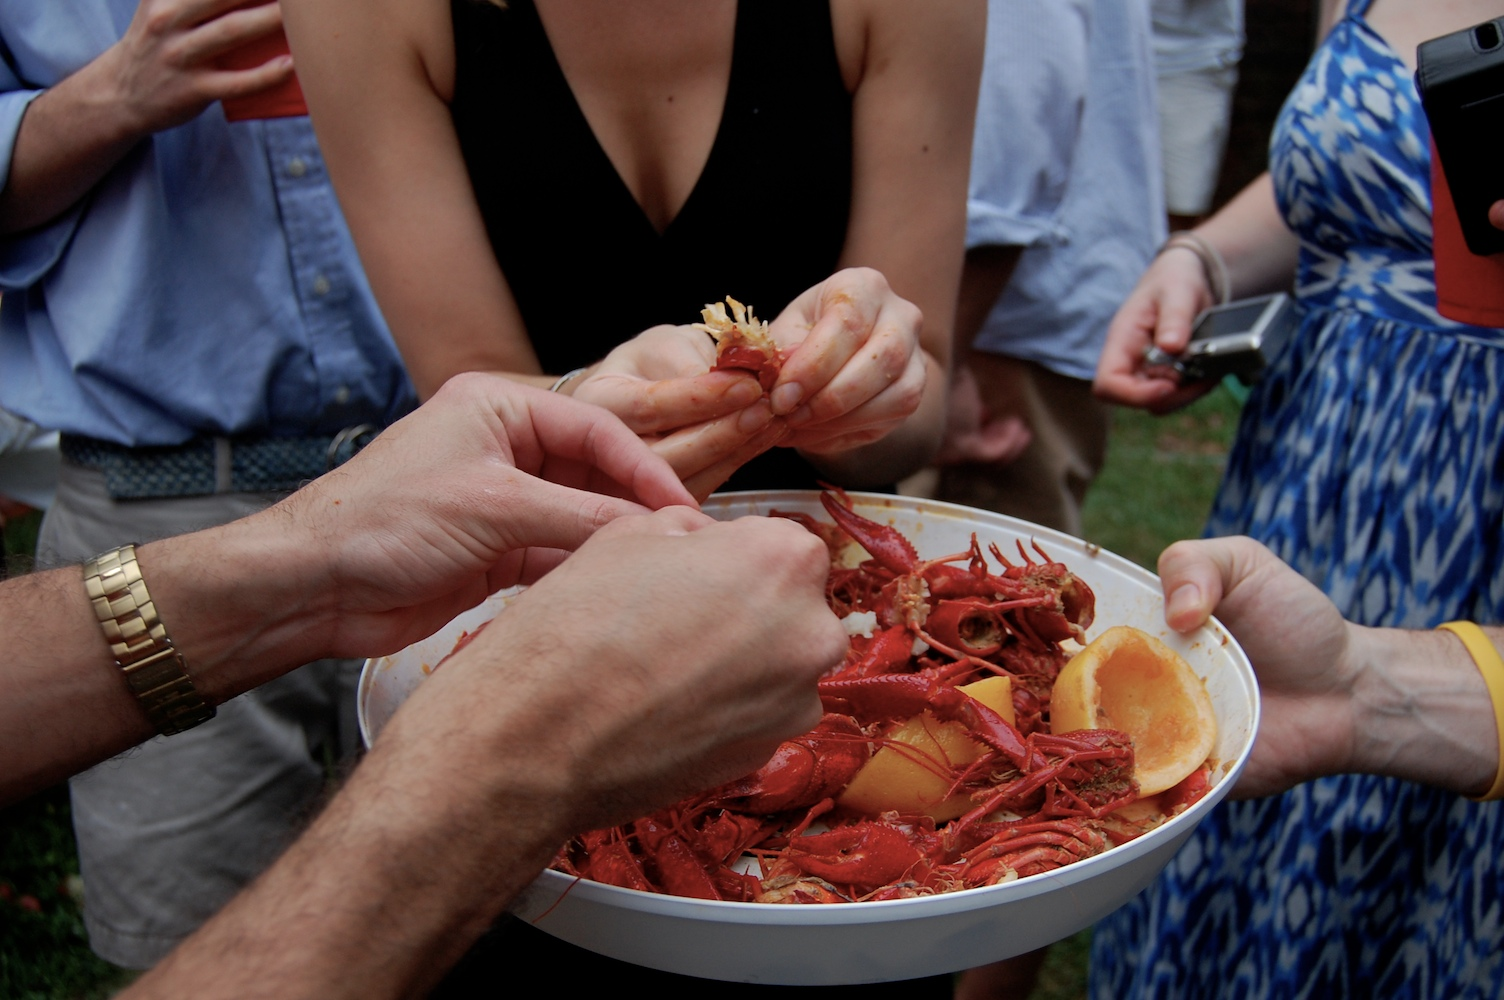 A Crawfish Boil Is A Time To Make Friends See The Above Picture In Which  We Take Turns Holding The Platter And Busting Open The Critters